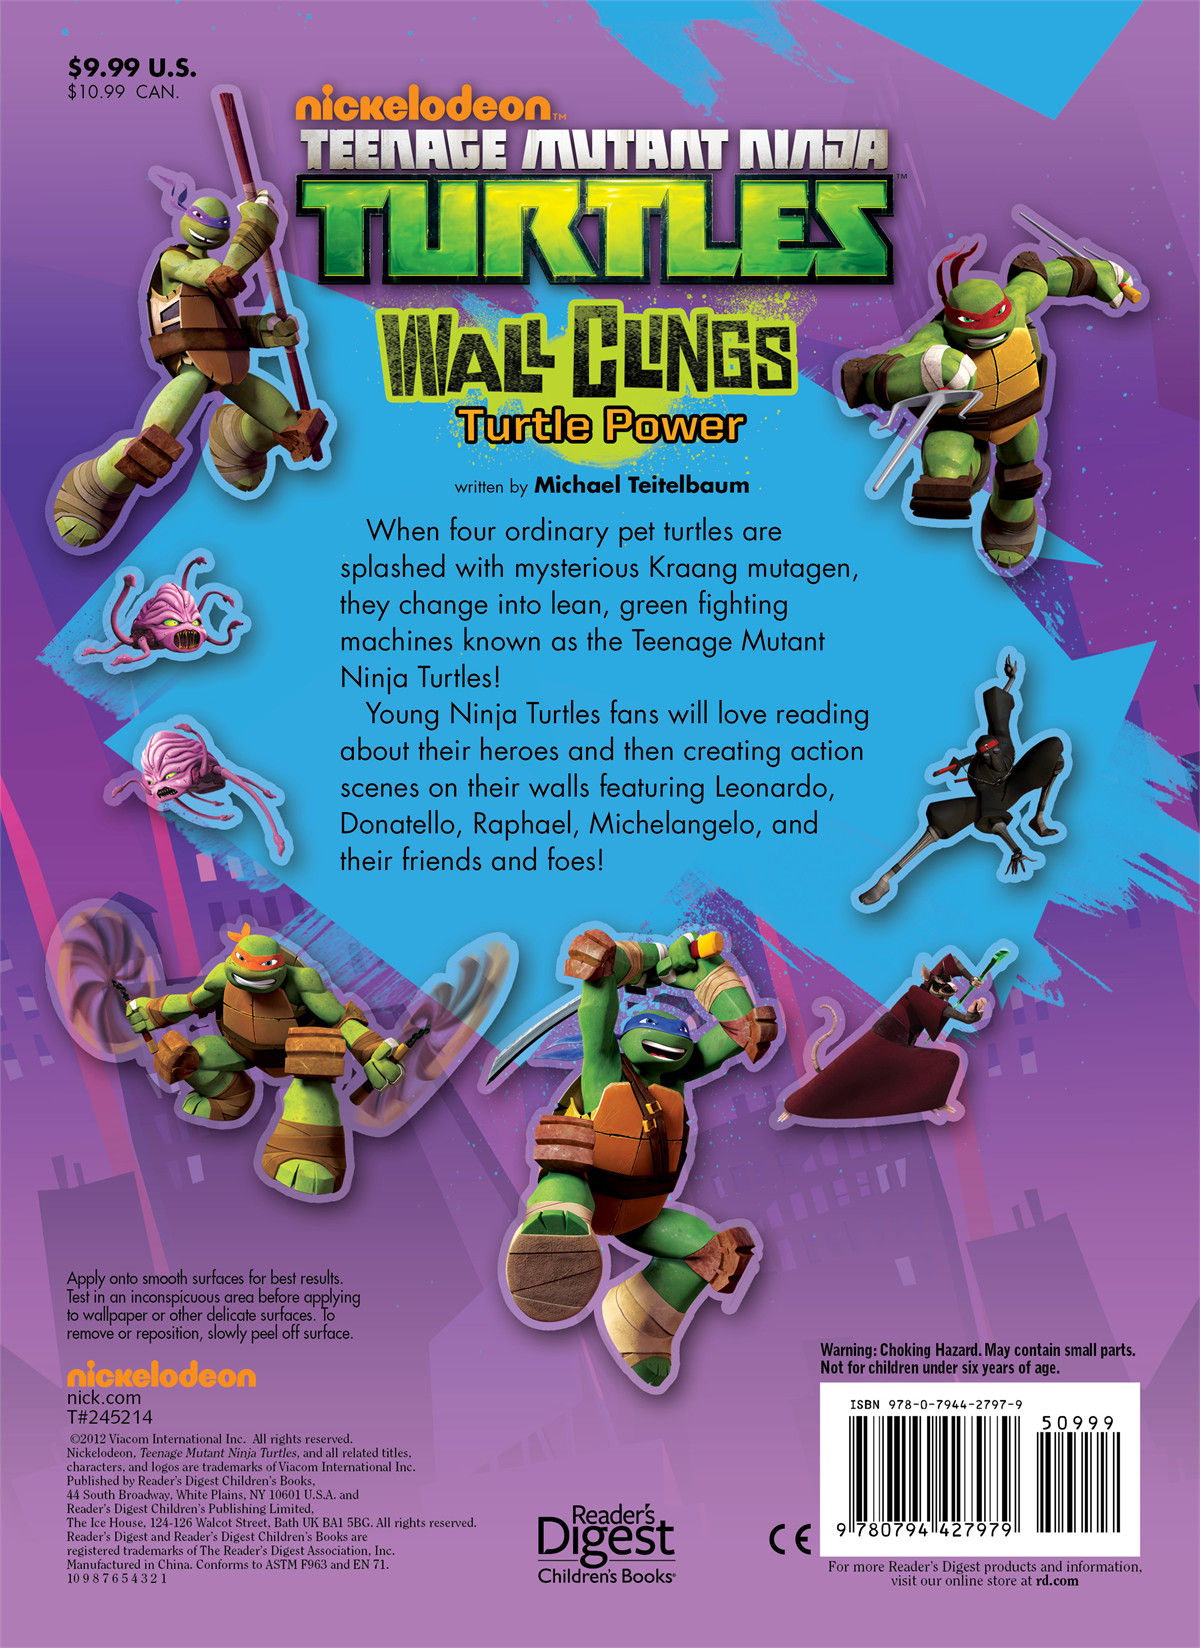 Teenage-mutant-ninja-turtles-wall-clings-9780794427979.in01